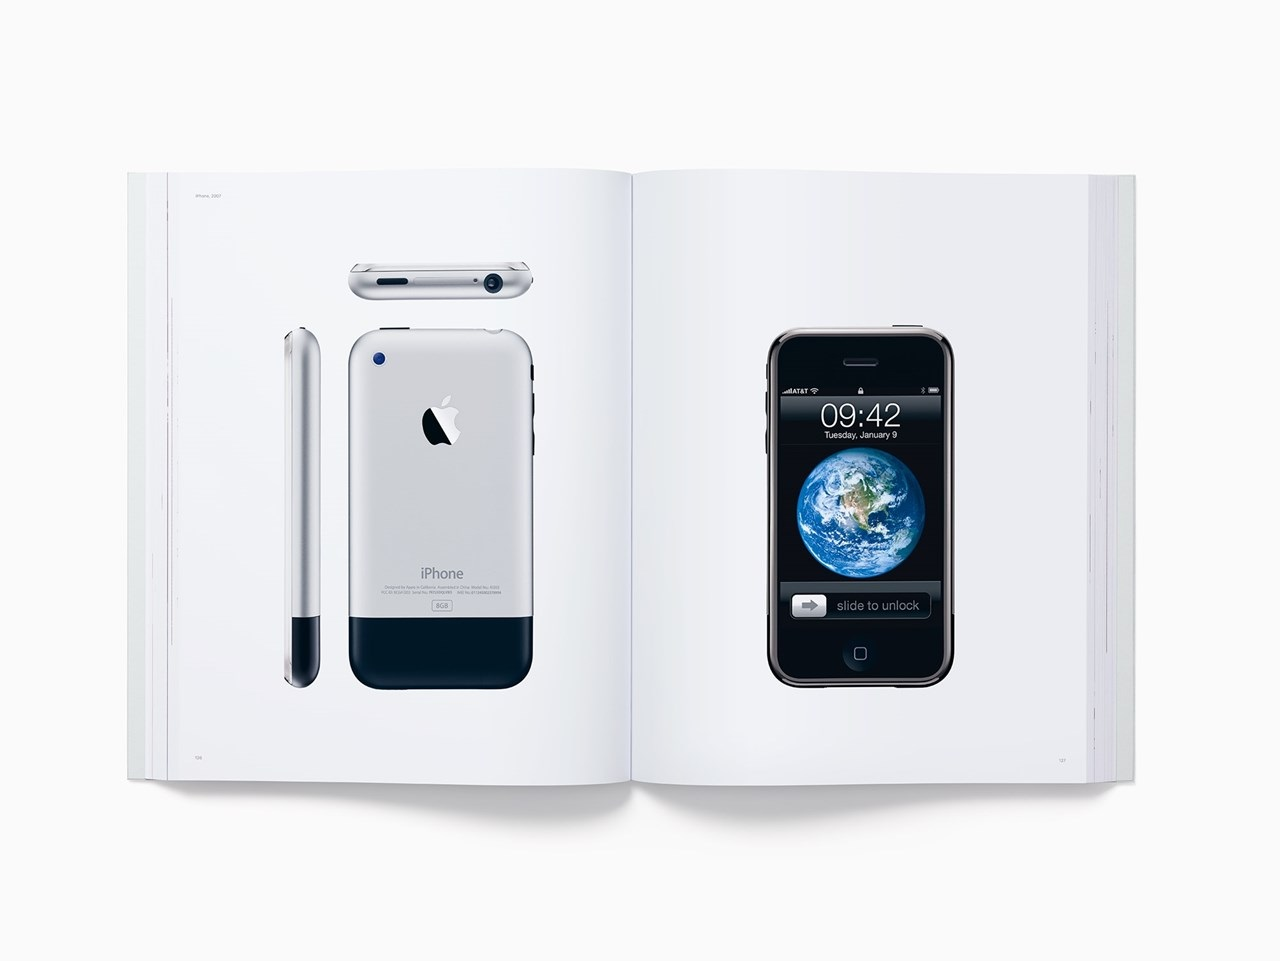 livro da Apple com o iPhone original